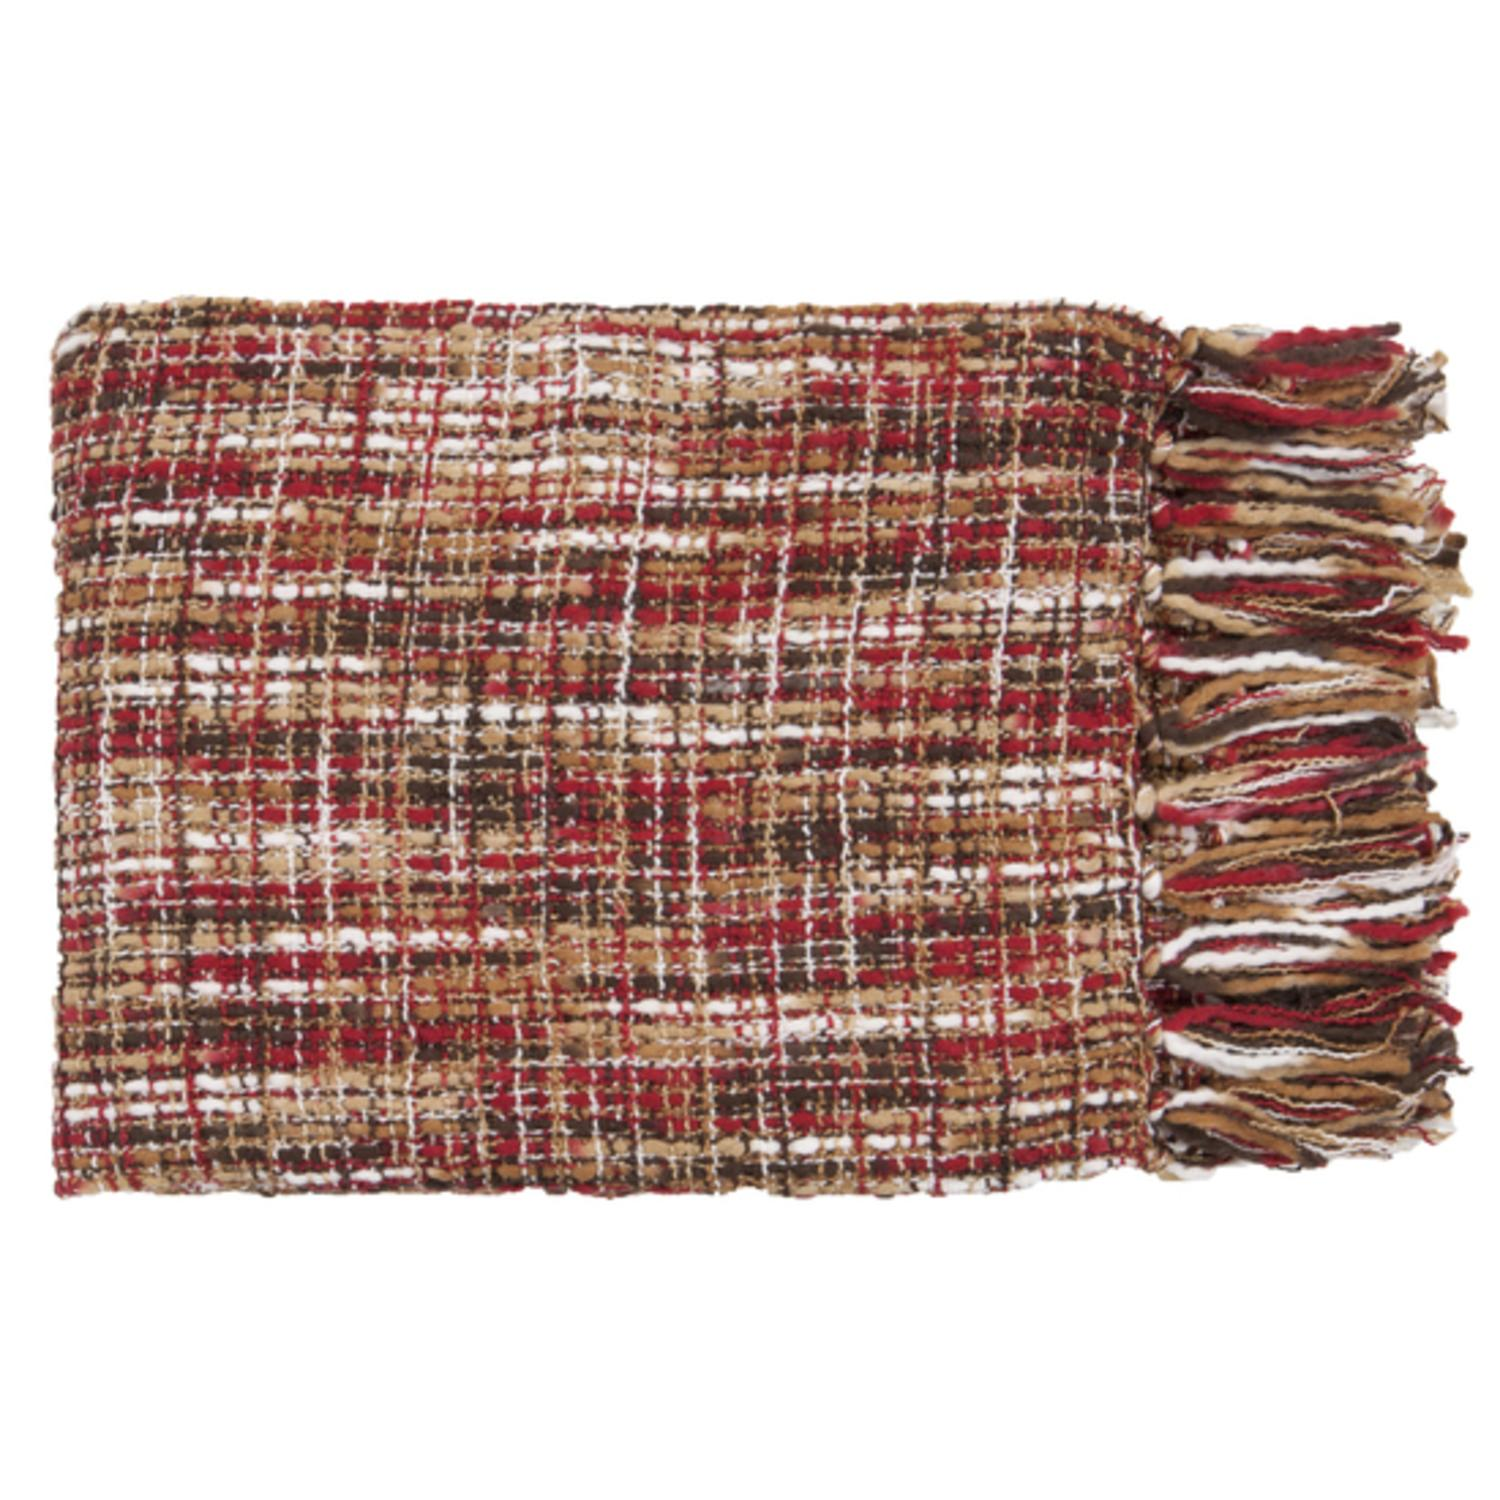 """50"""" x 60"""" Golden Sunset Red and Tan Throw Blanket"""